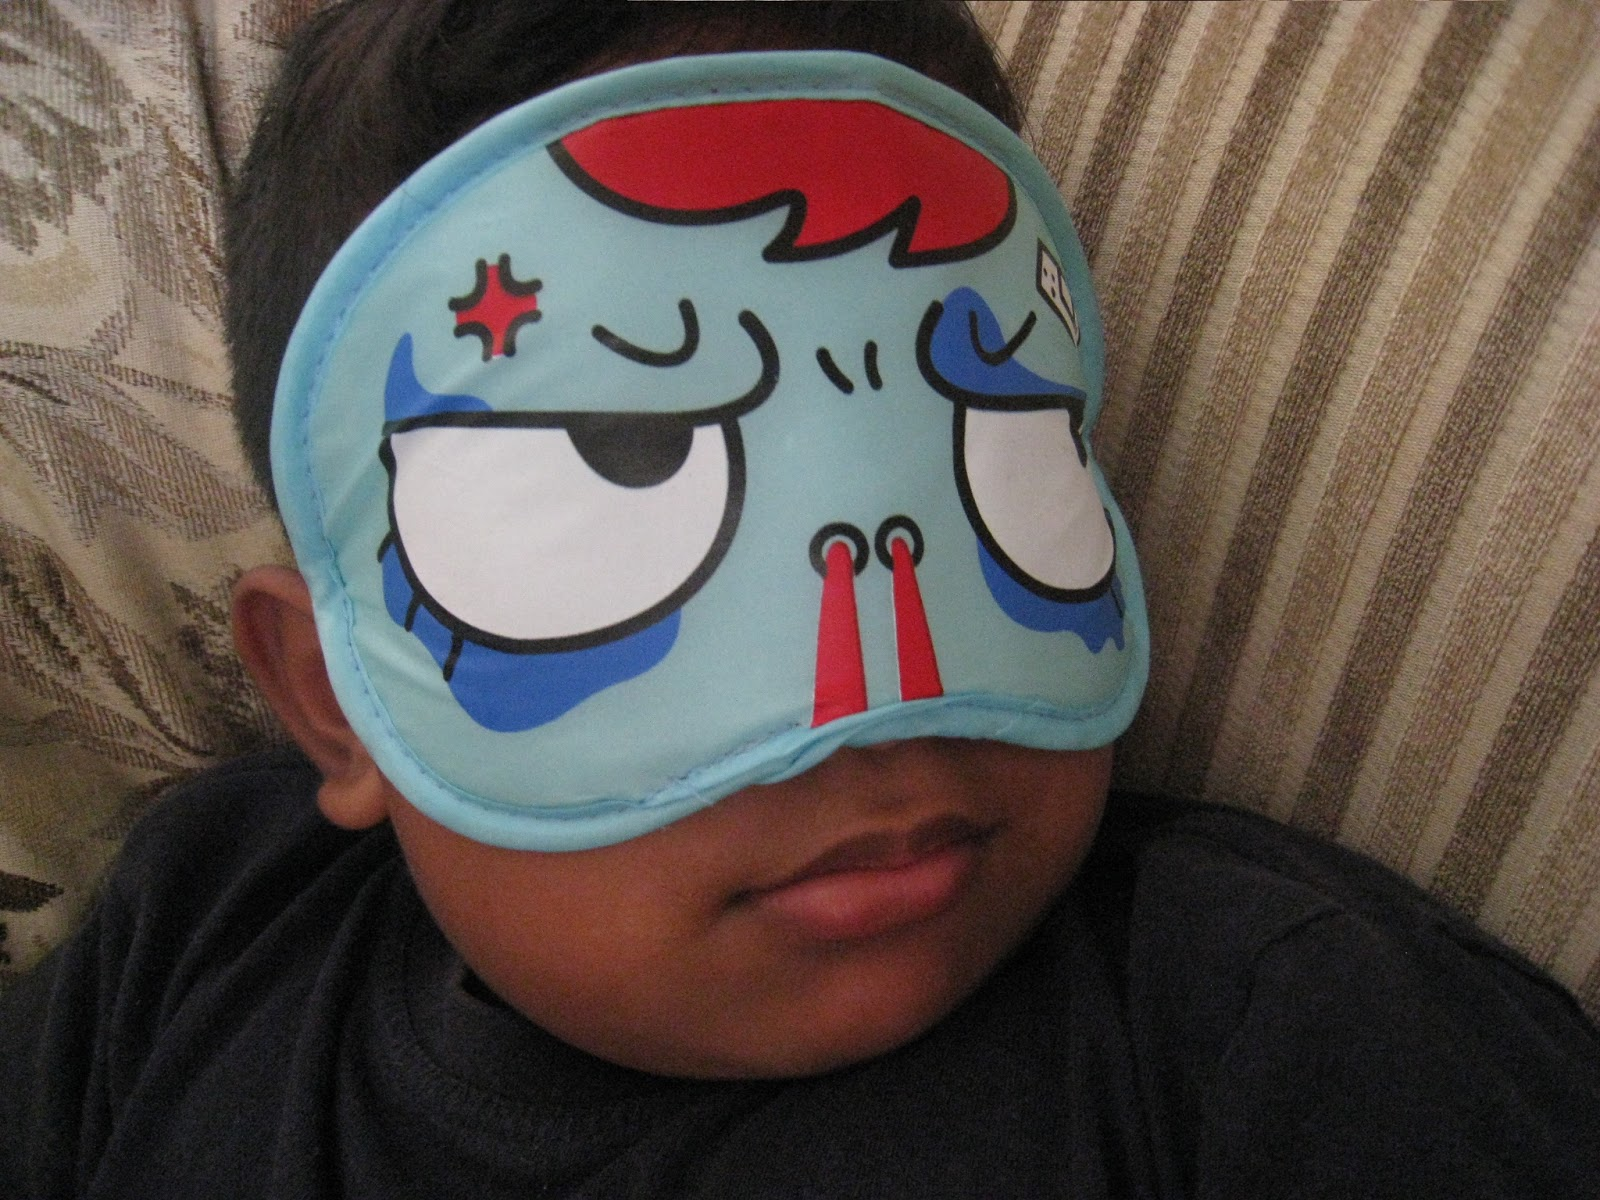 Eye Mask -- Free Pattern & Tutorial My granddad collected teddy bears for years and gave several away as gifts to us grand kids a few years back. This one is one of Olivia's favorite stuffed animals. Sleep Mask: Works Great! Eye Mask -- Free Pattern & Tutorial; Feeling Better (sort of) .